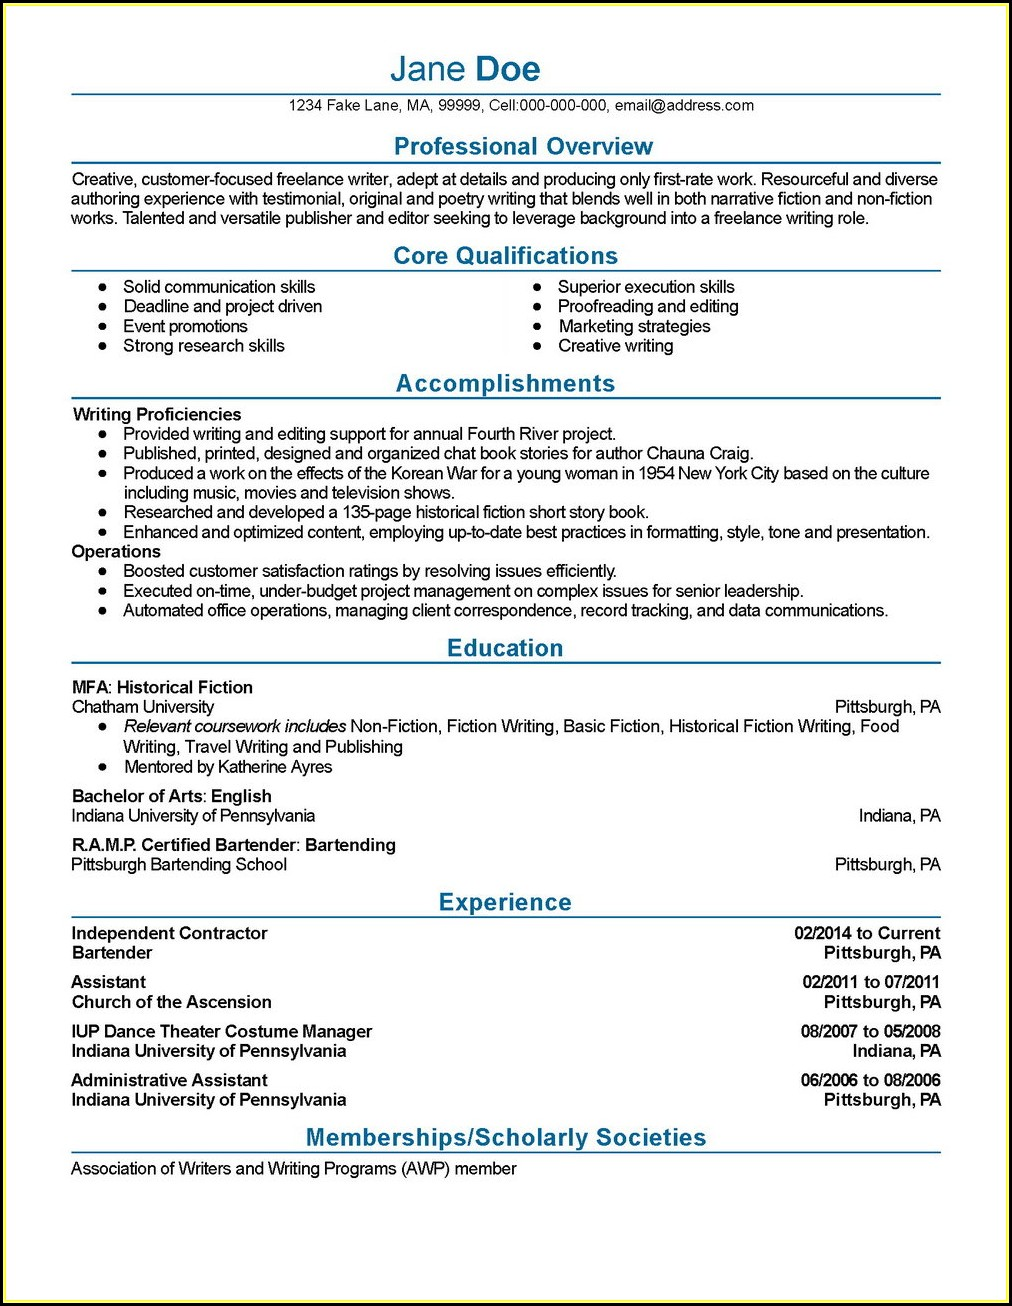 best professional resume writing services groupon and cover letter service pa landscaping Resume Professional Resume Writing Services Philadelphia